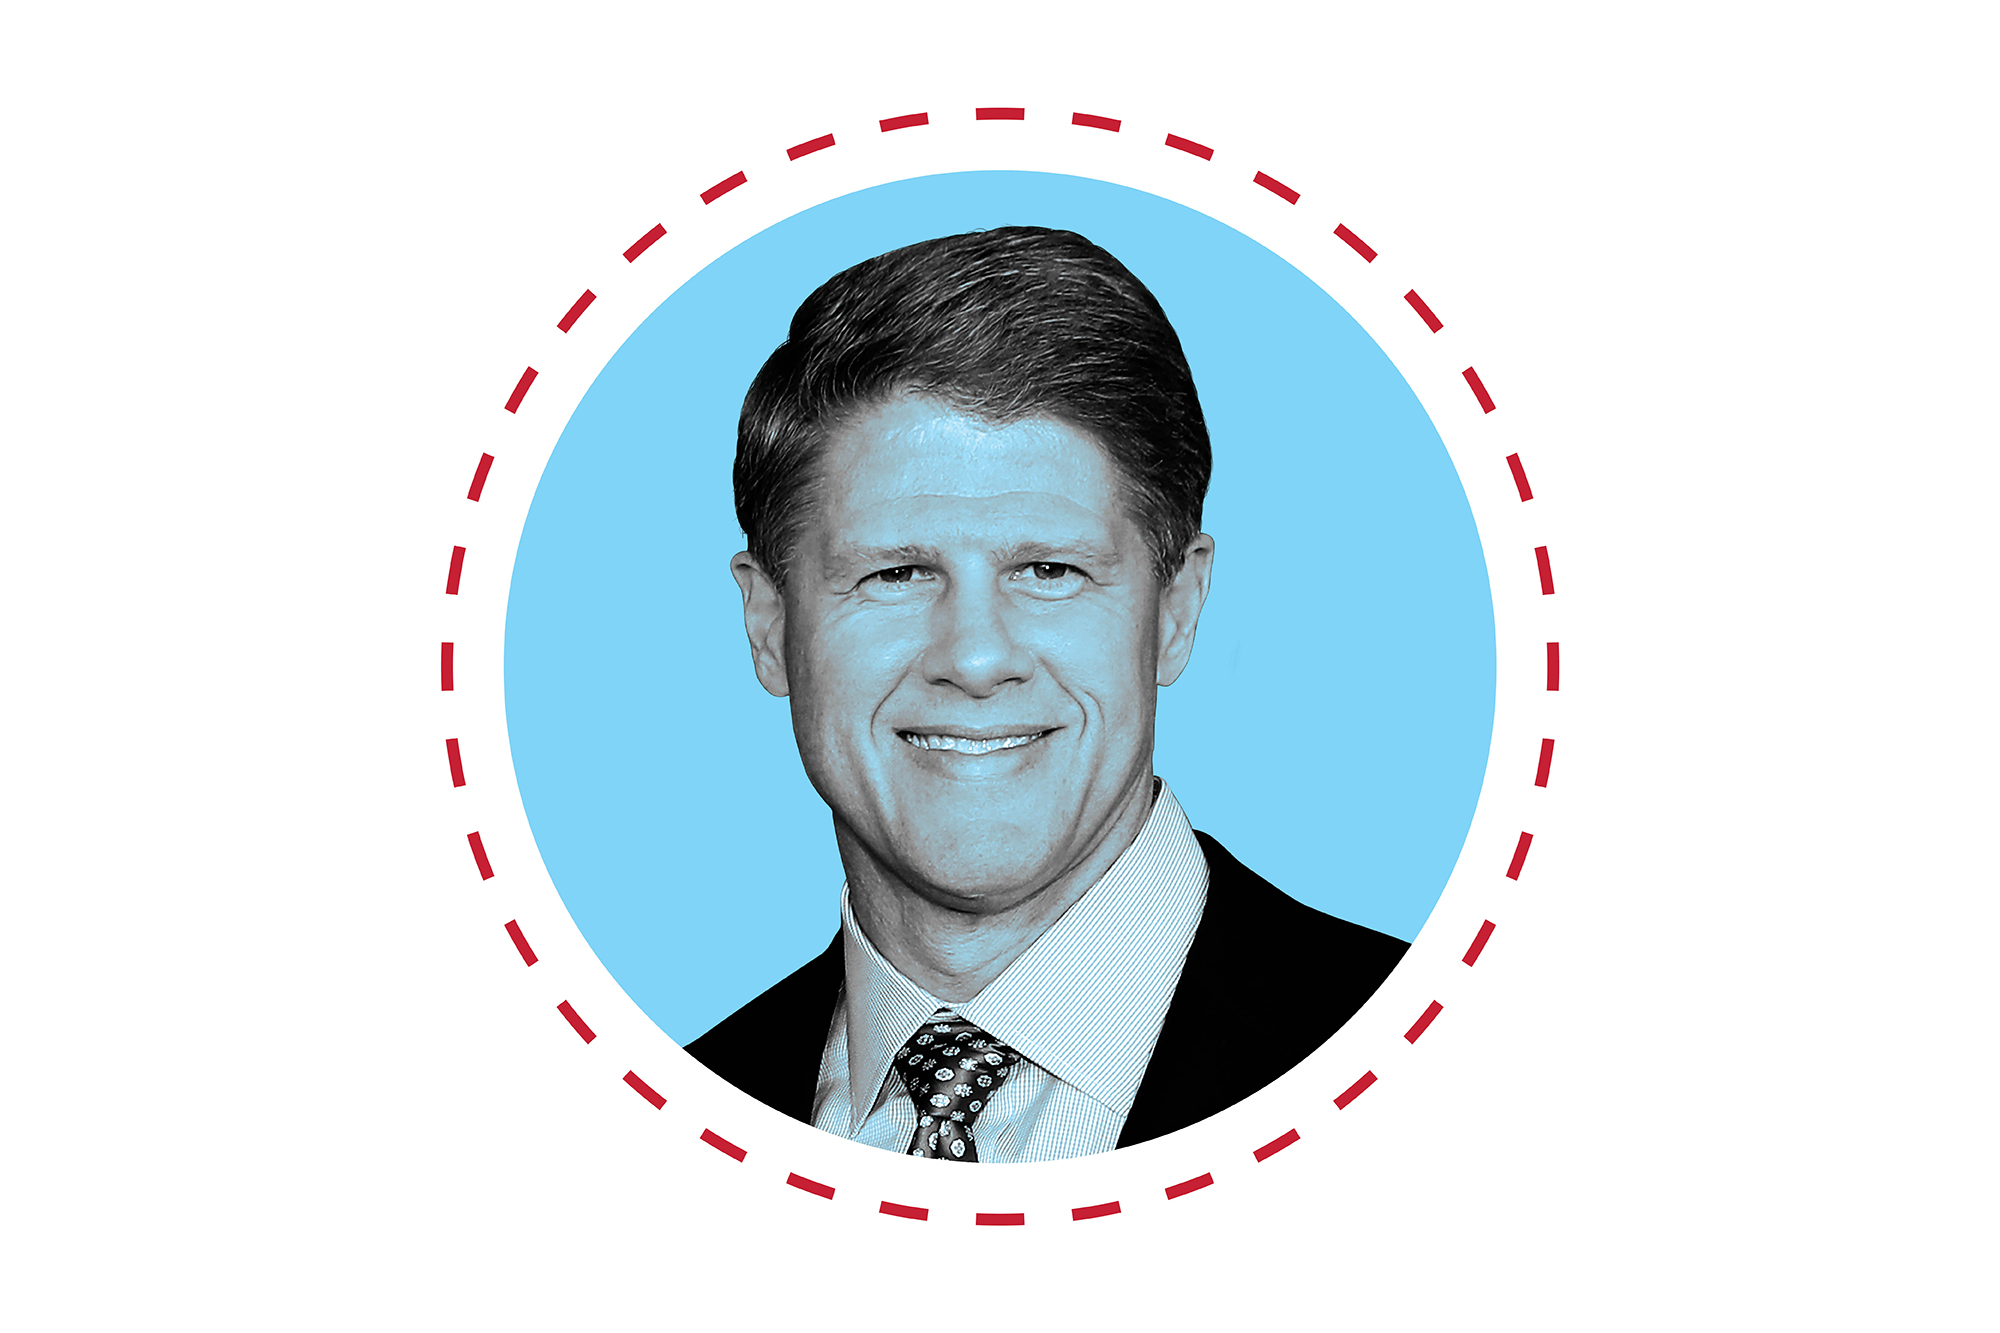 Kansas City Chiefs Owner: Clark Hunt net worth, political donations